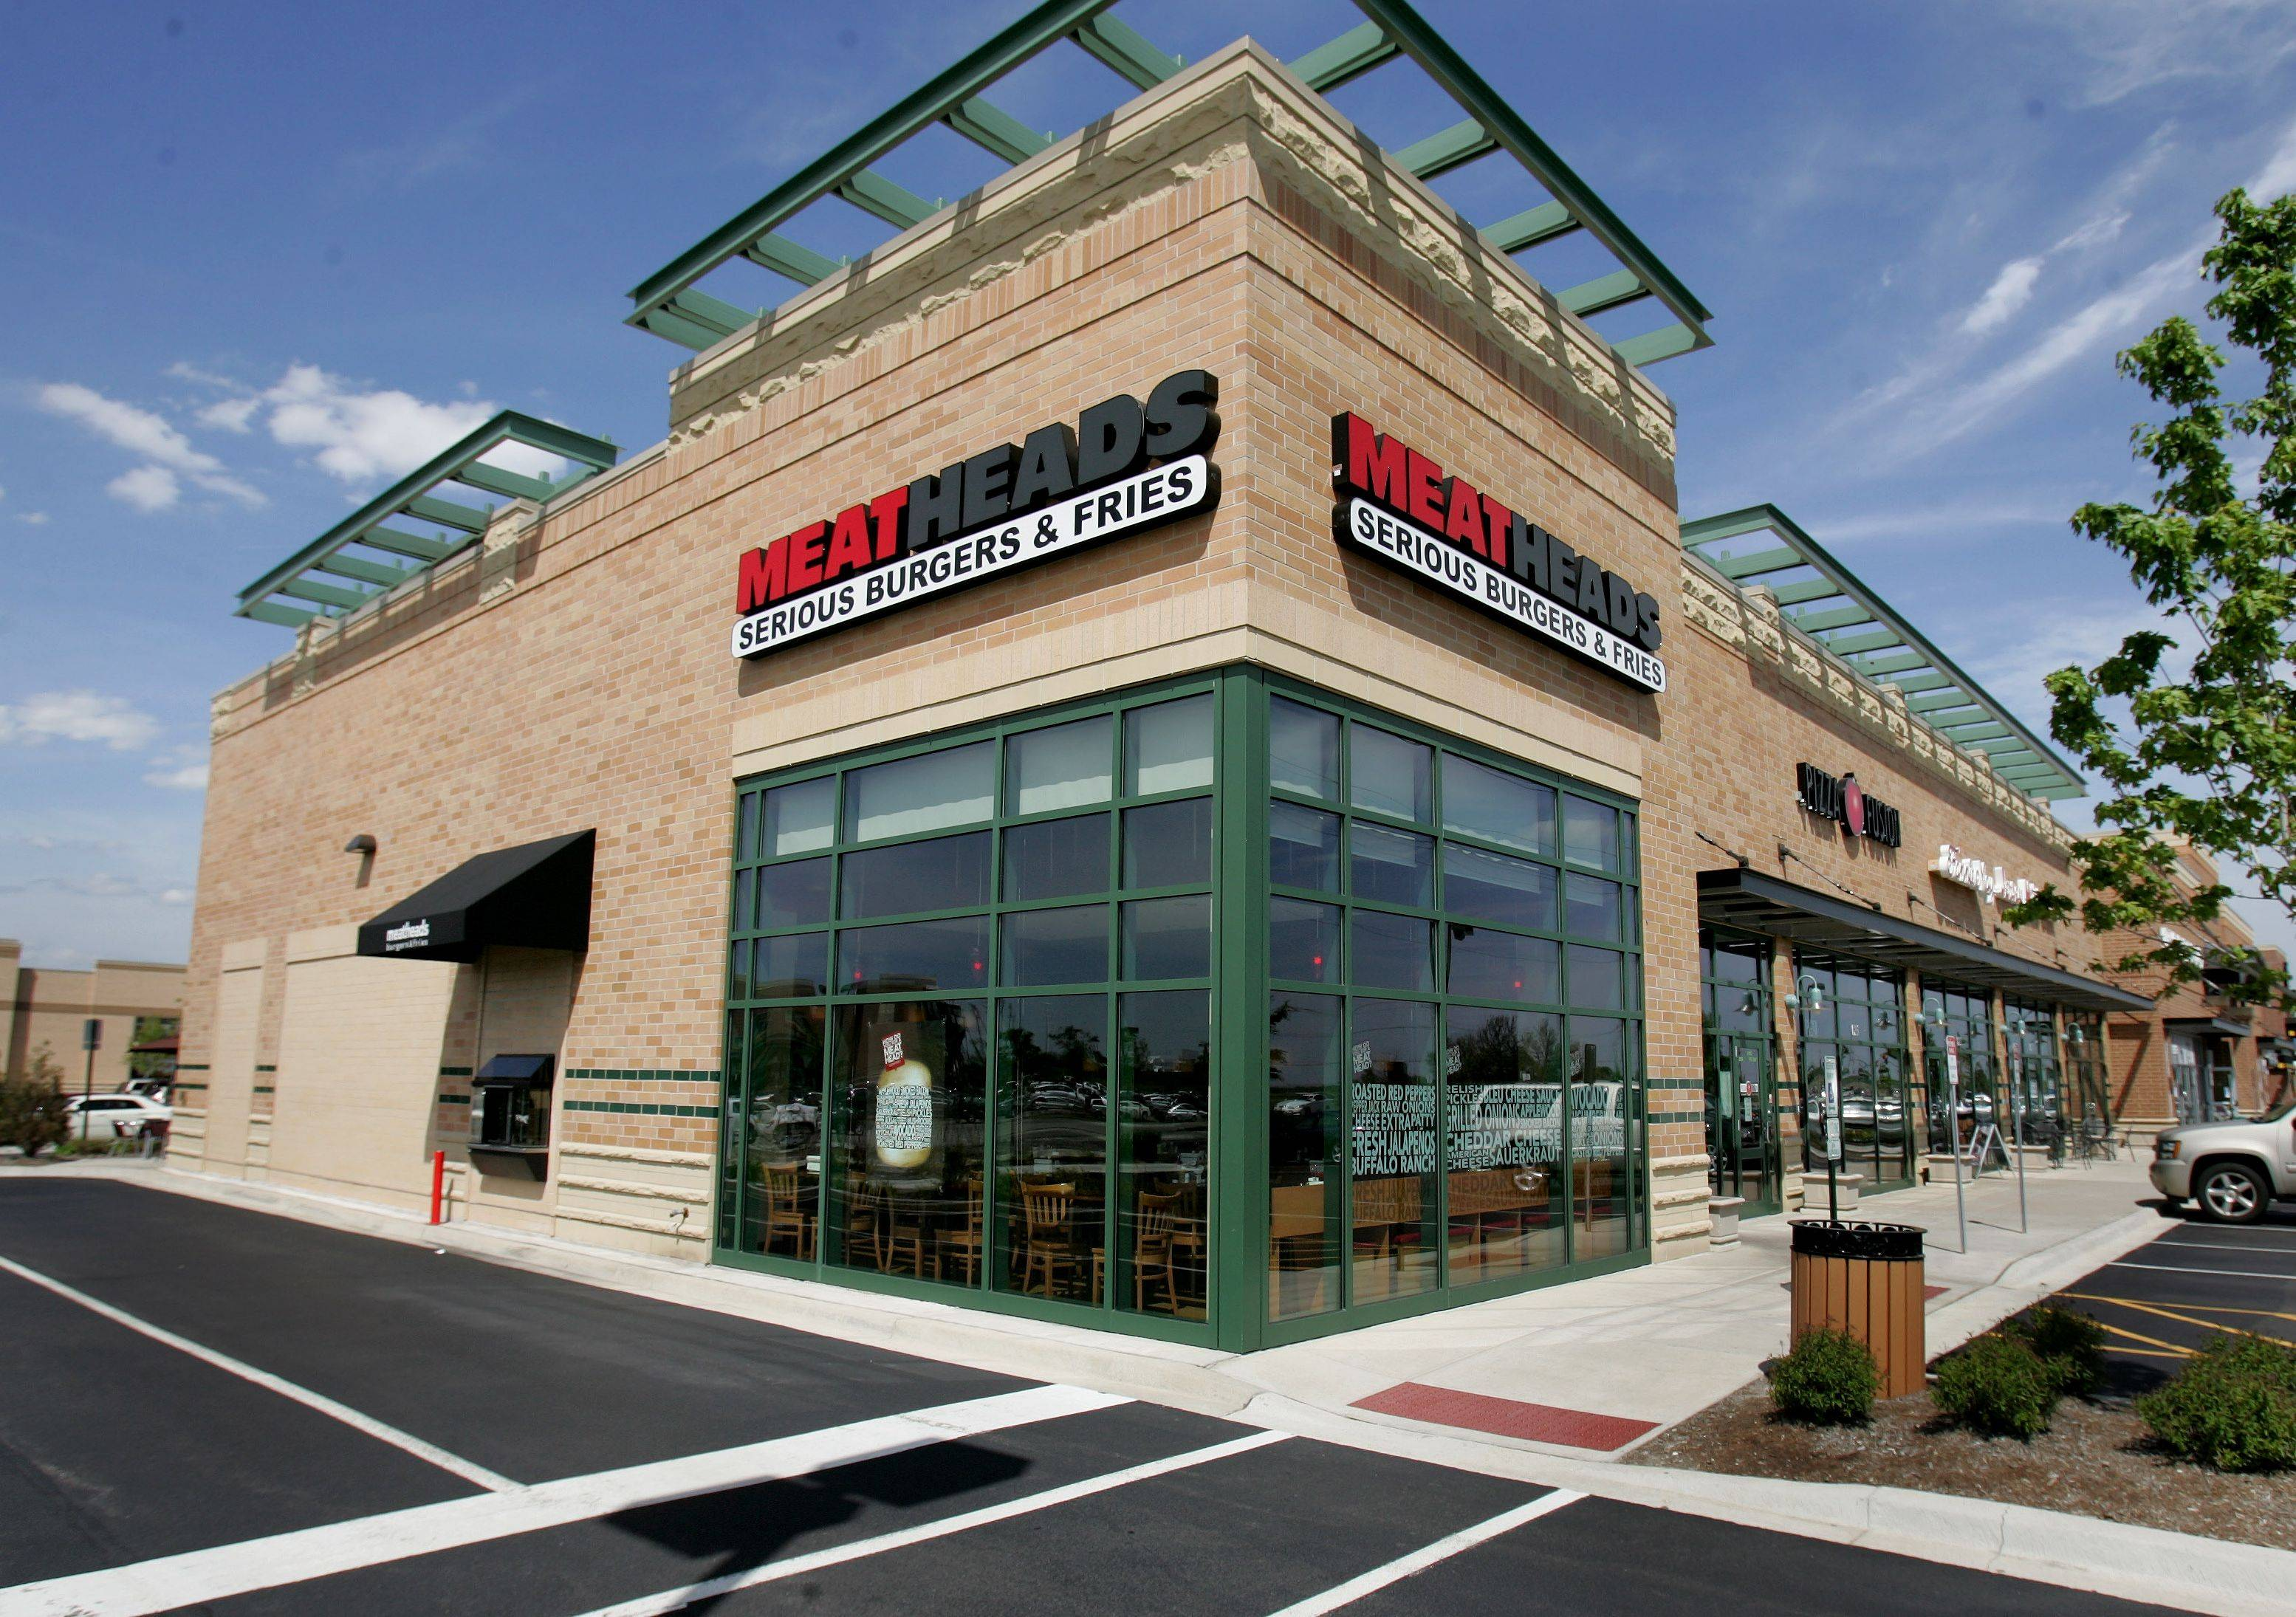 Meatheads plans to open a new location in Barrington, similar to this one in Naperville.